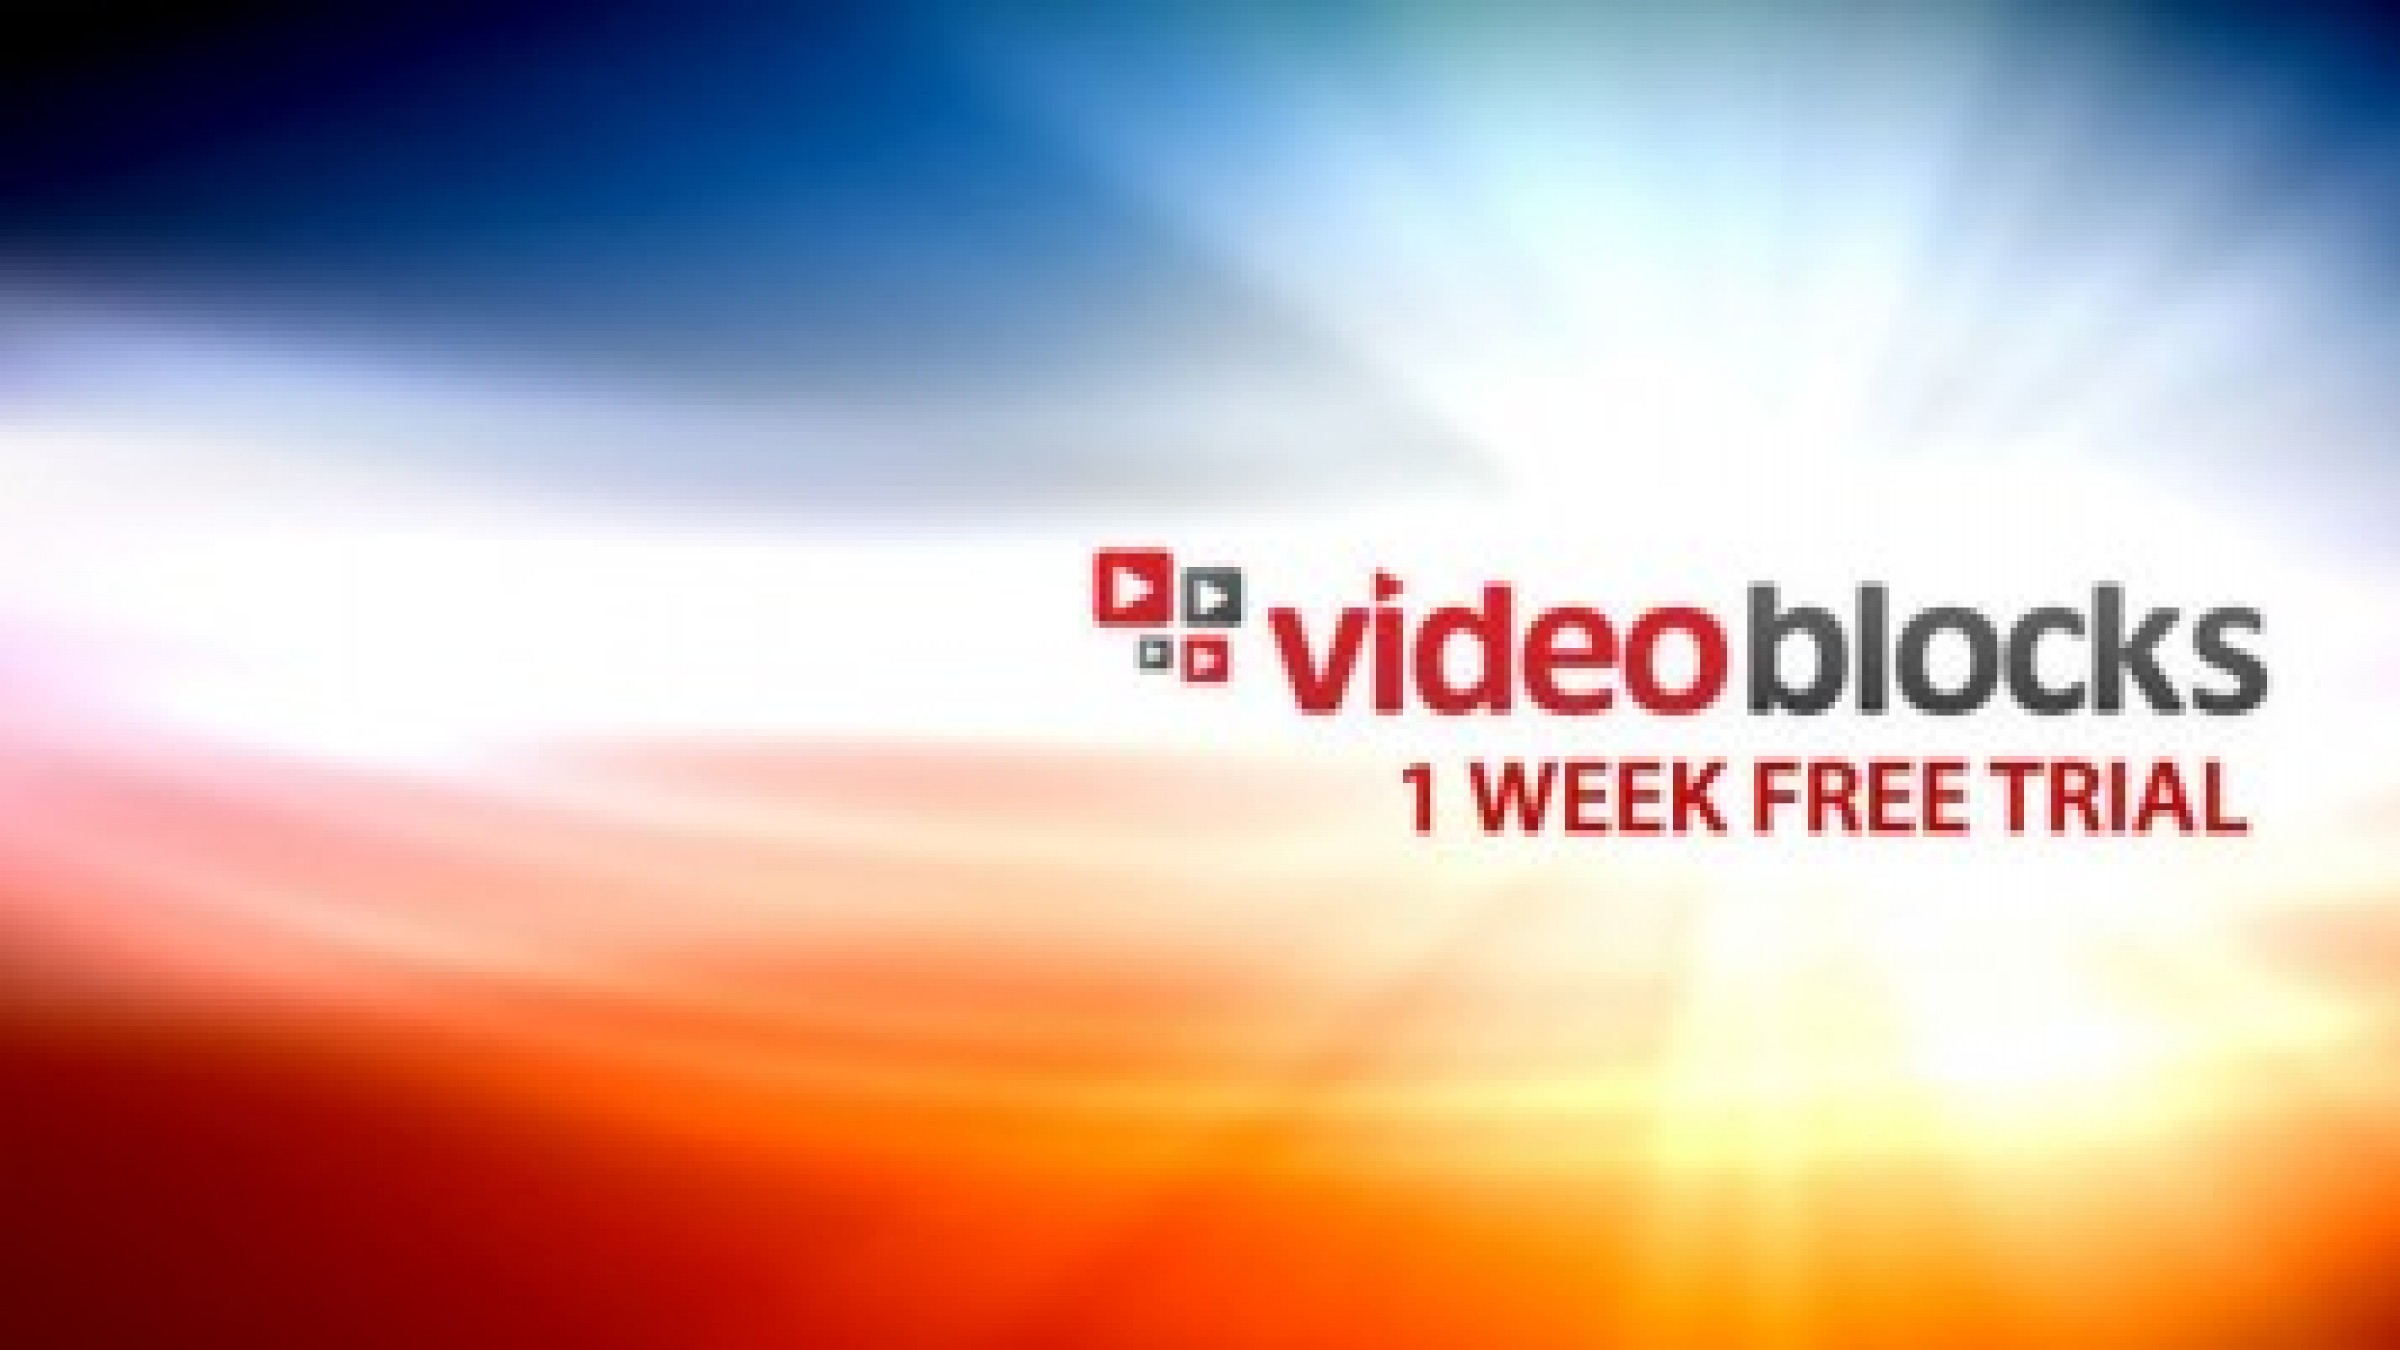 Day trial for video blocks gets you 140 free downloads of stock